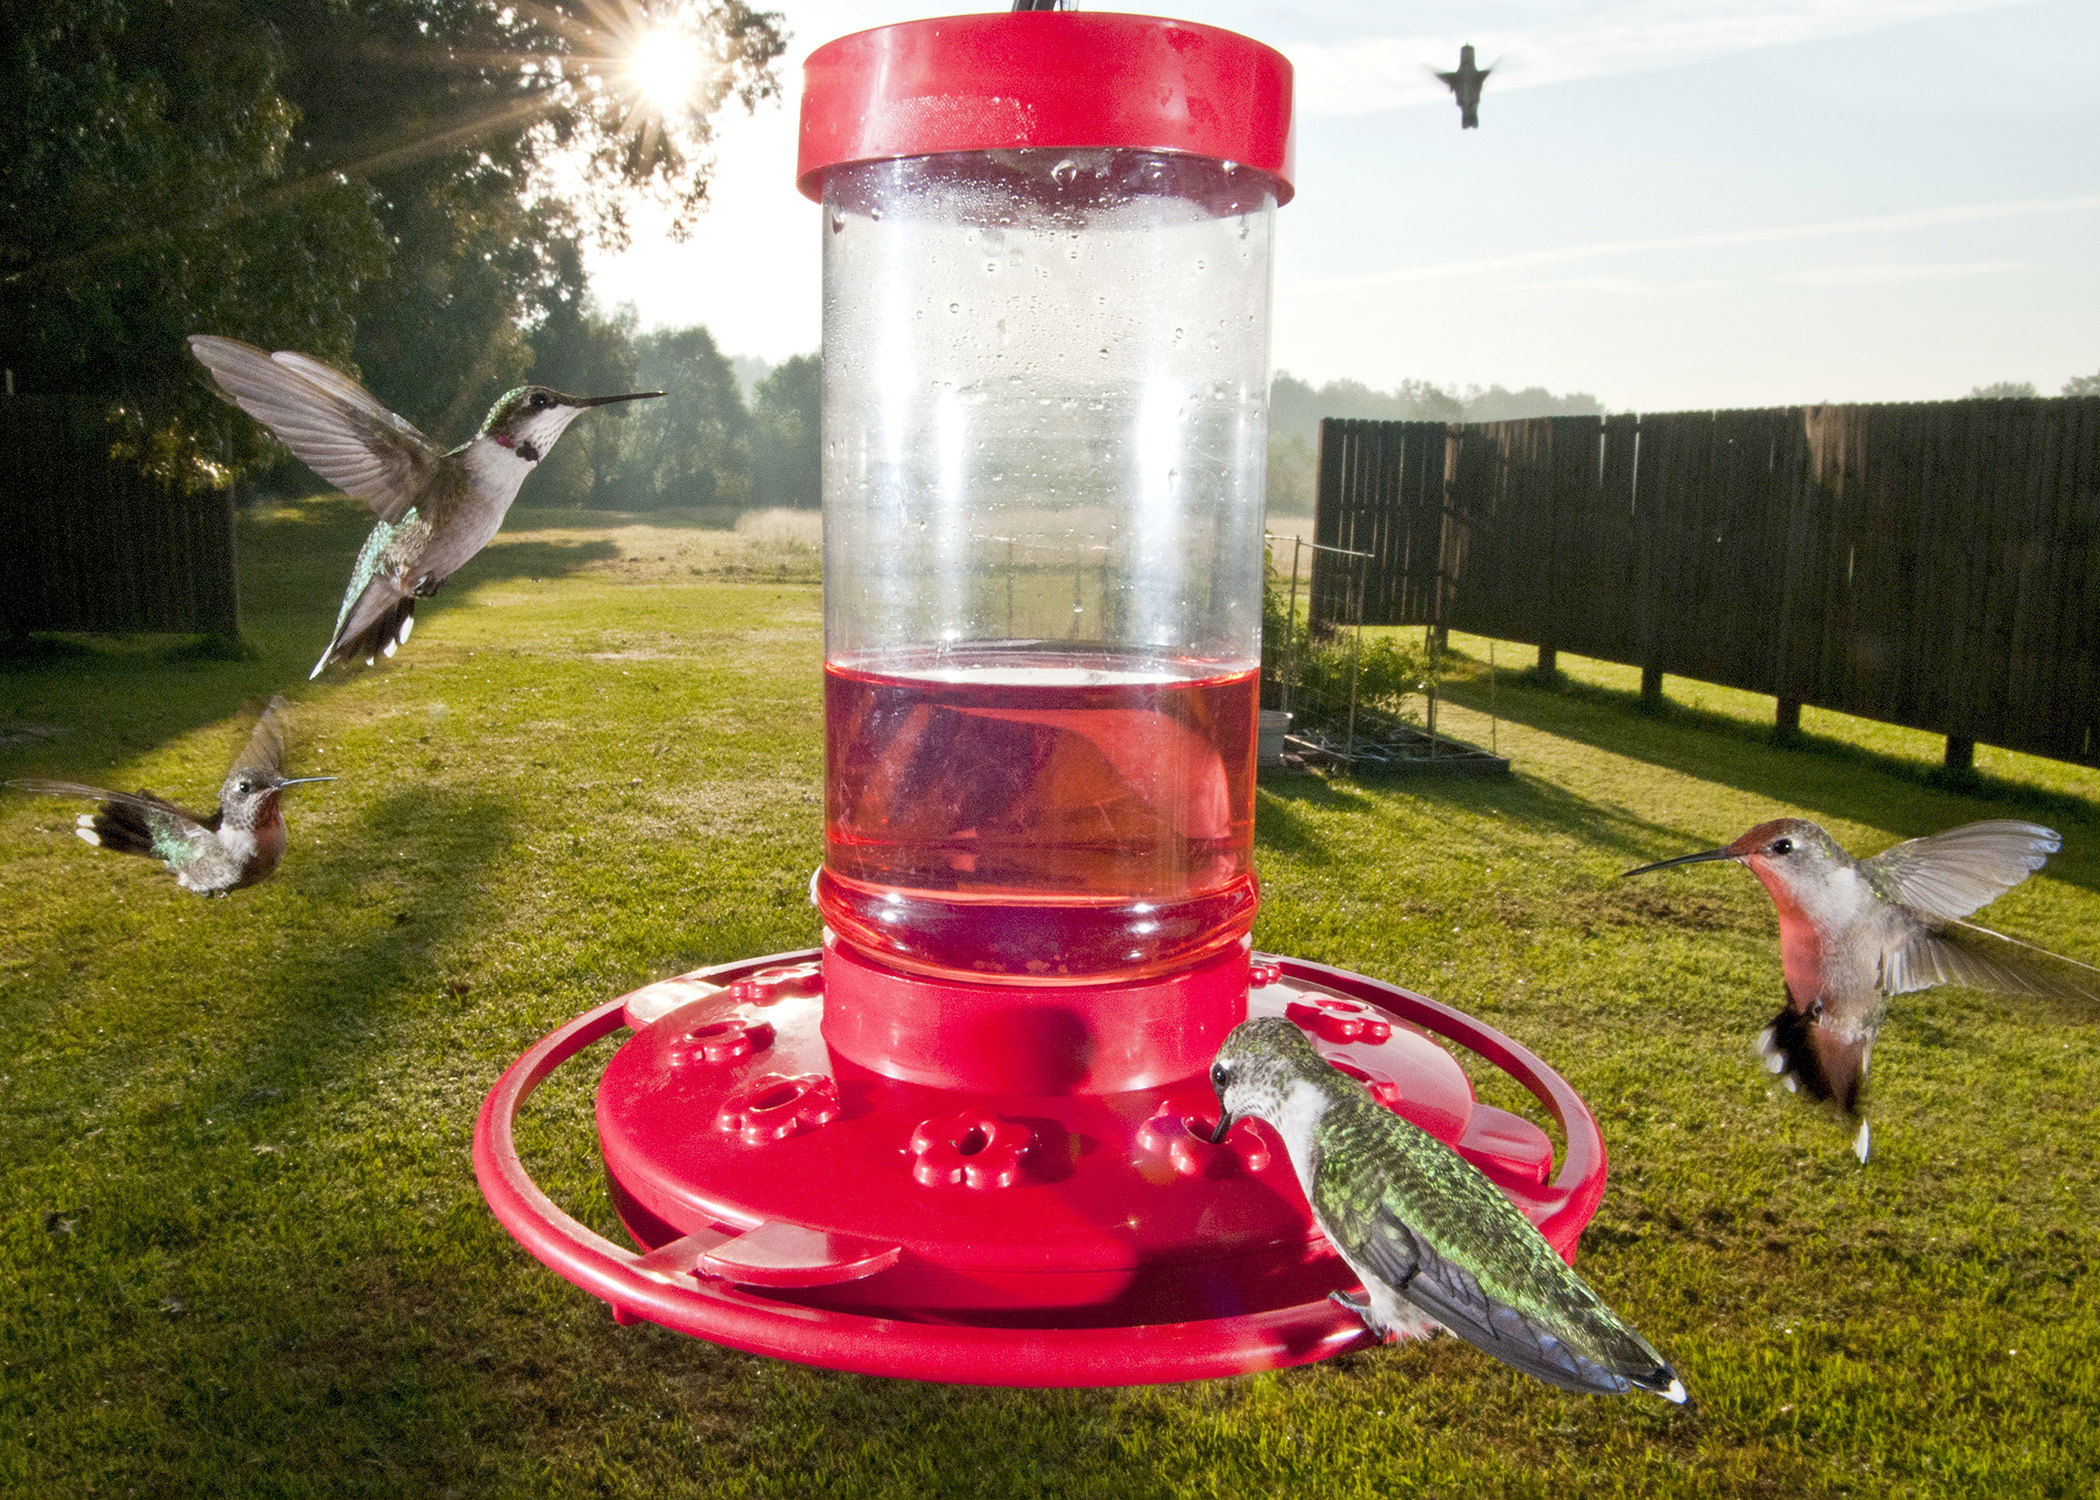 Hummingbird Feeders Attract Tiny Migrating Visitors To Mississippi Yards,  But Anyone Who Is Not Willing